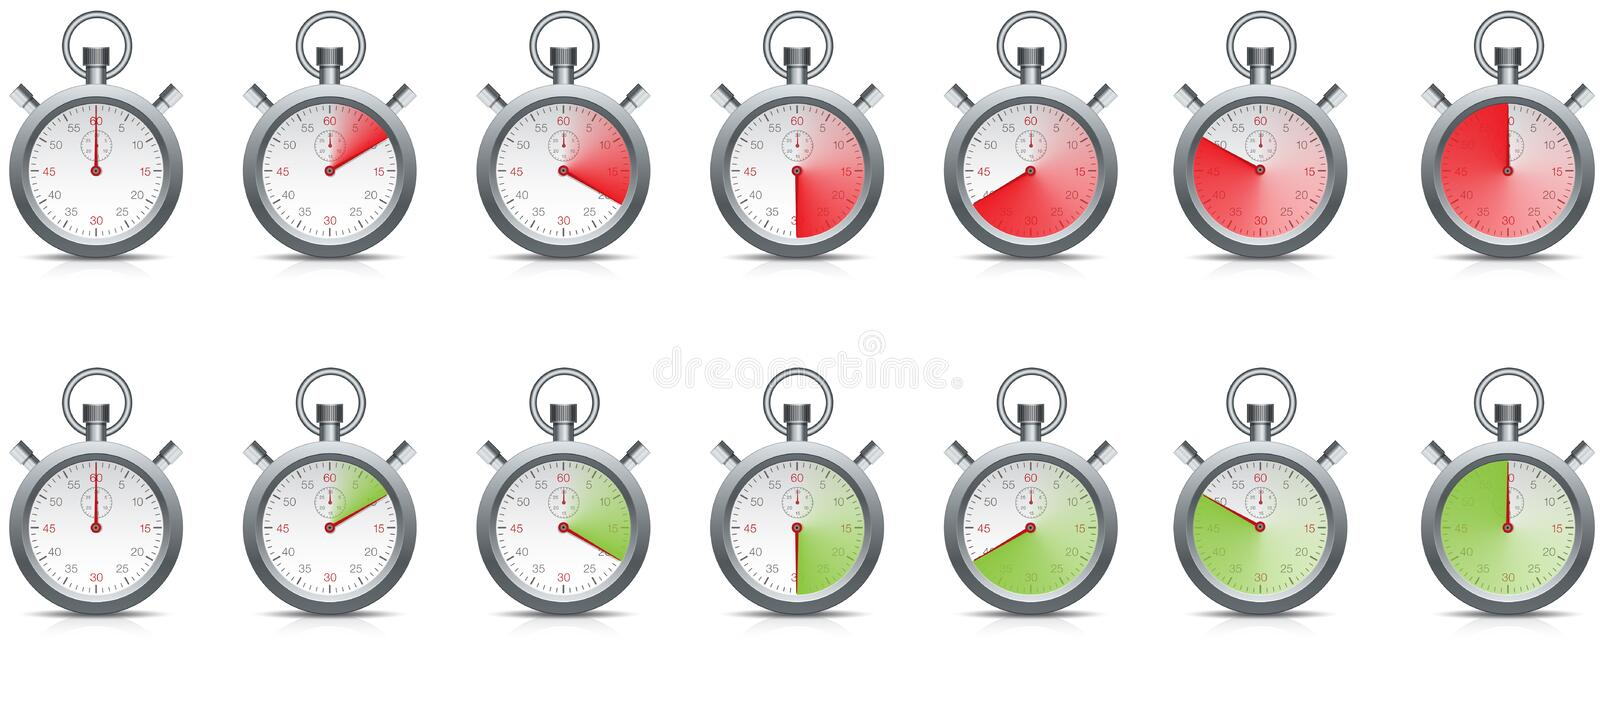 Stopwatch with time passing royalty free stock photos